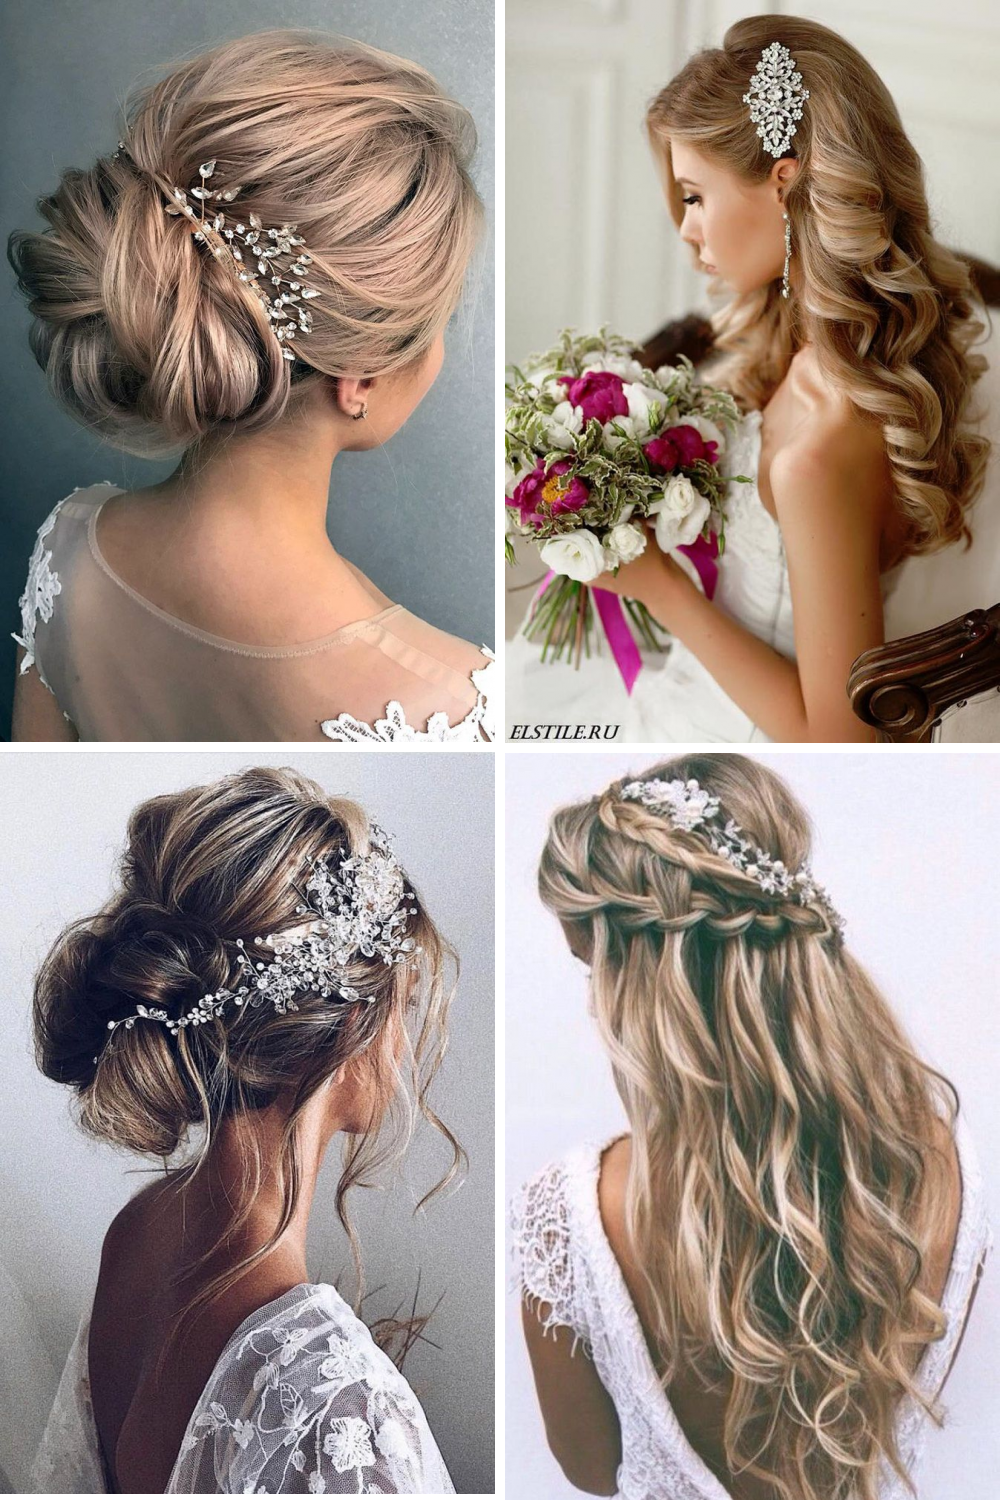 11 Lovely Wedding Hairstyle Ideas You Will Fall In Love Wedding Hairstyles Beach Wedding Hair Hair Styles